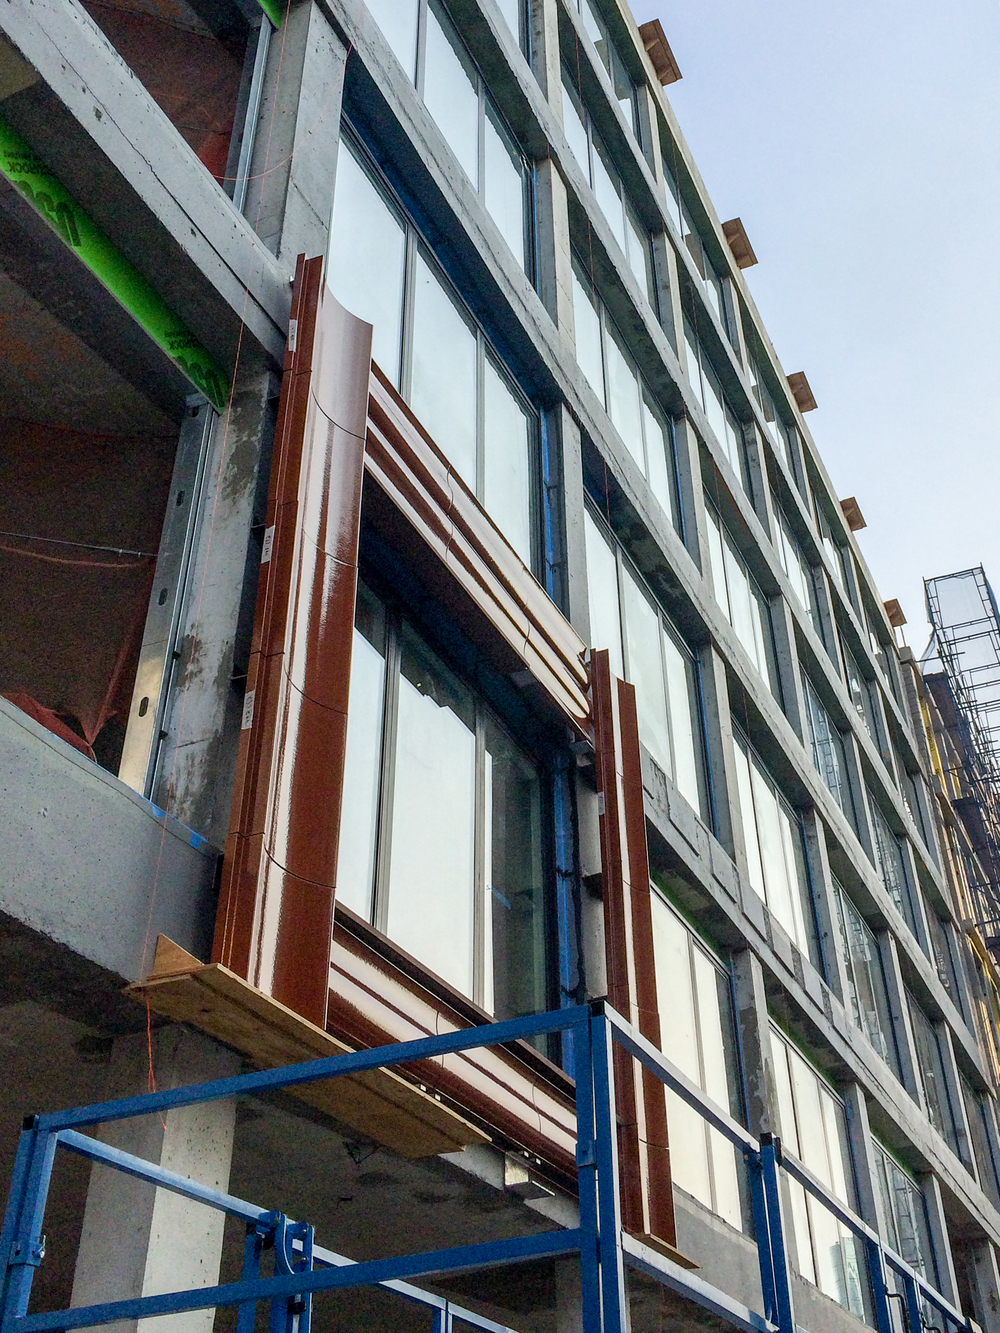 Terracotta panels installed around a second floor window.